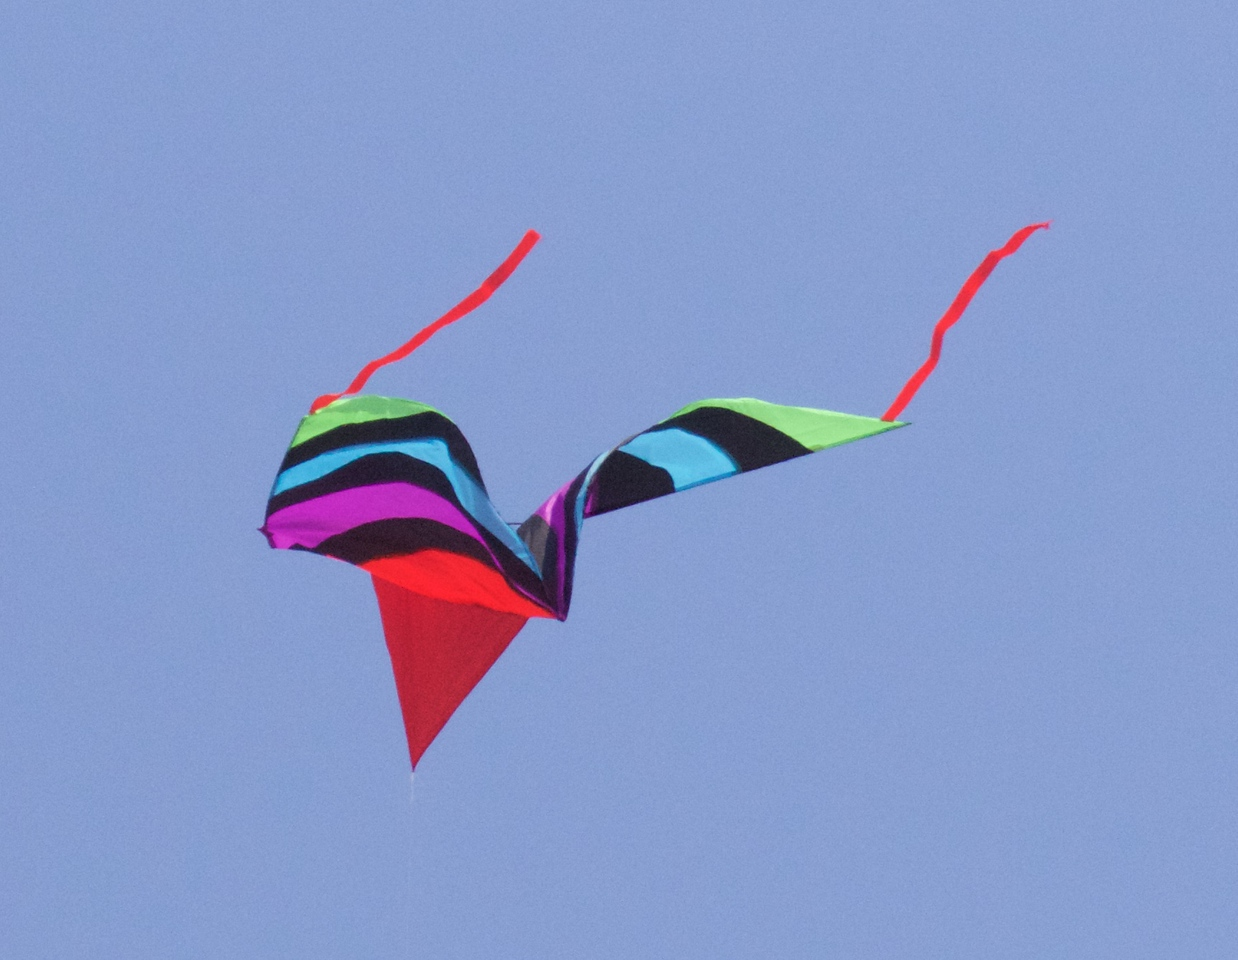 M - Kite with new lens